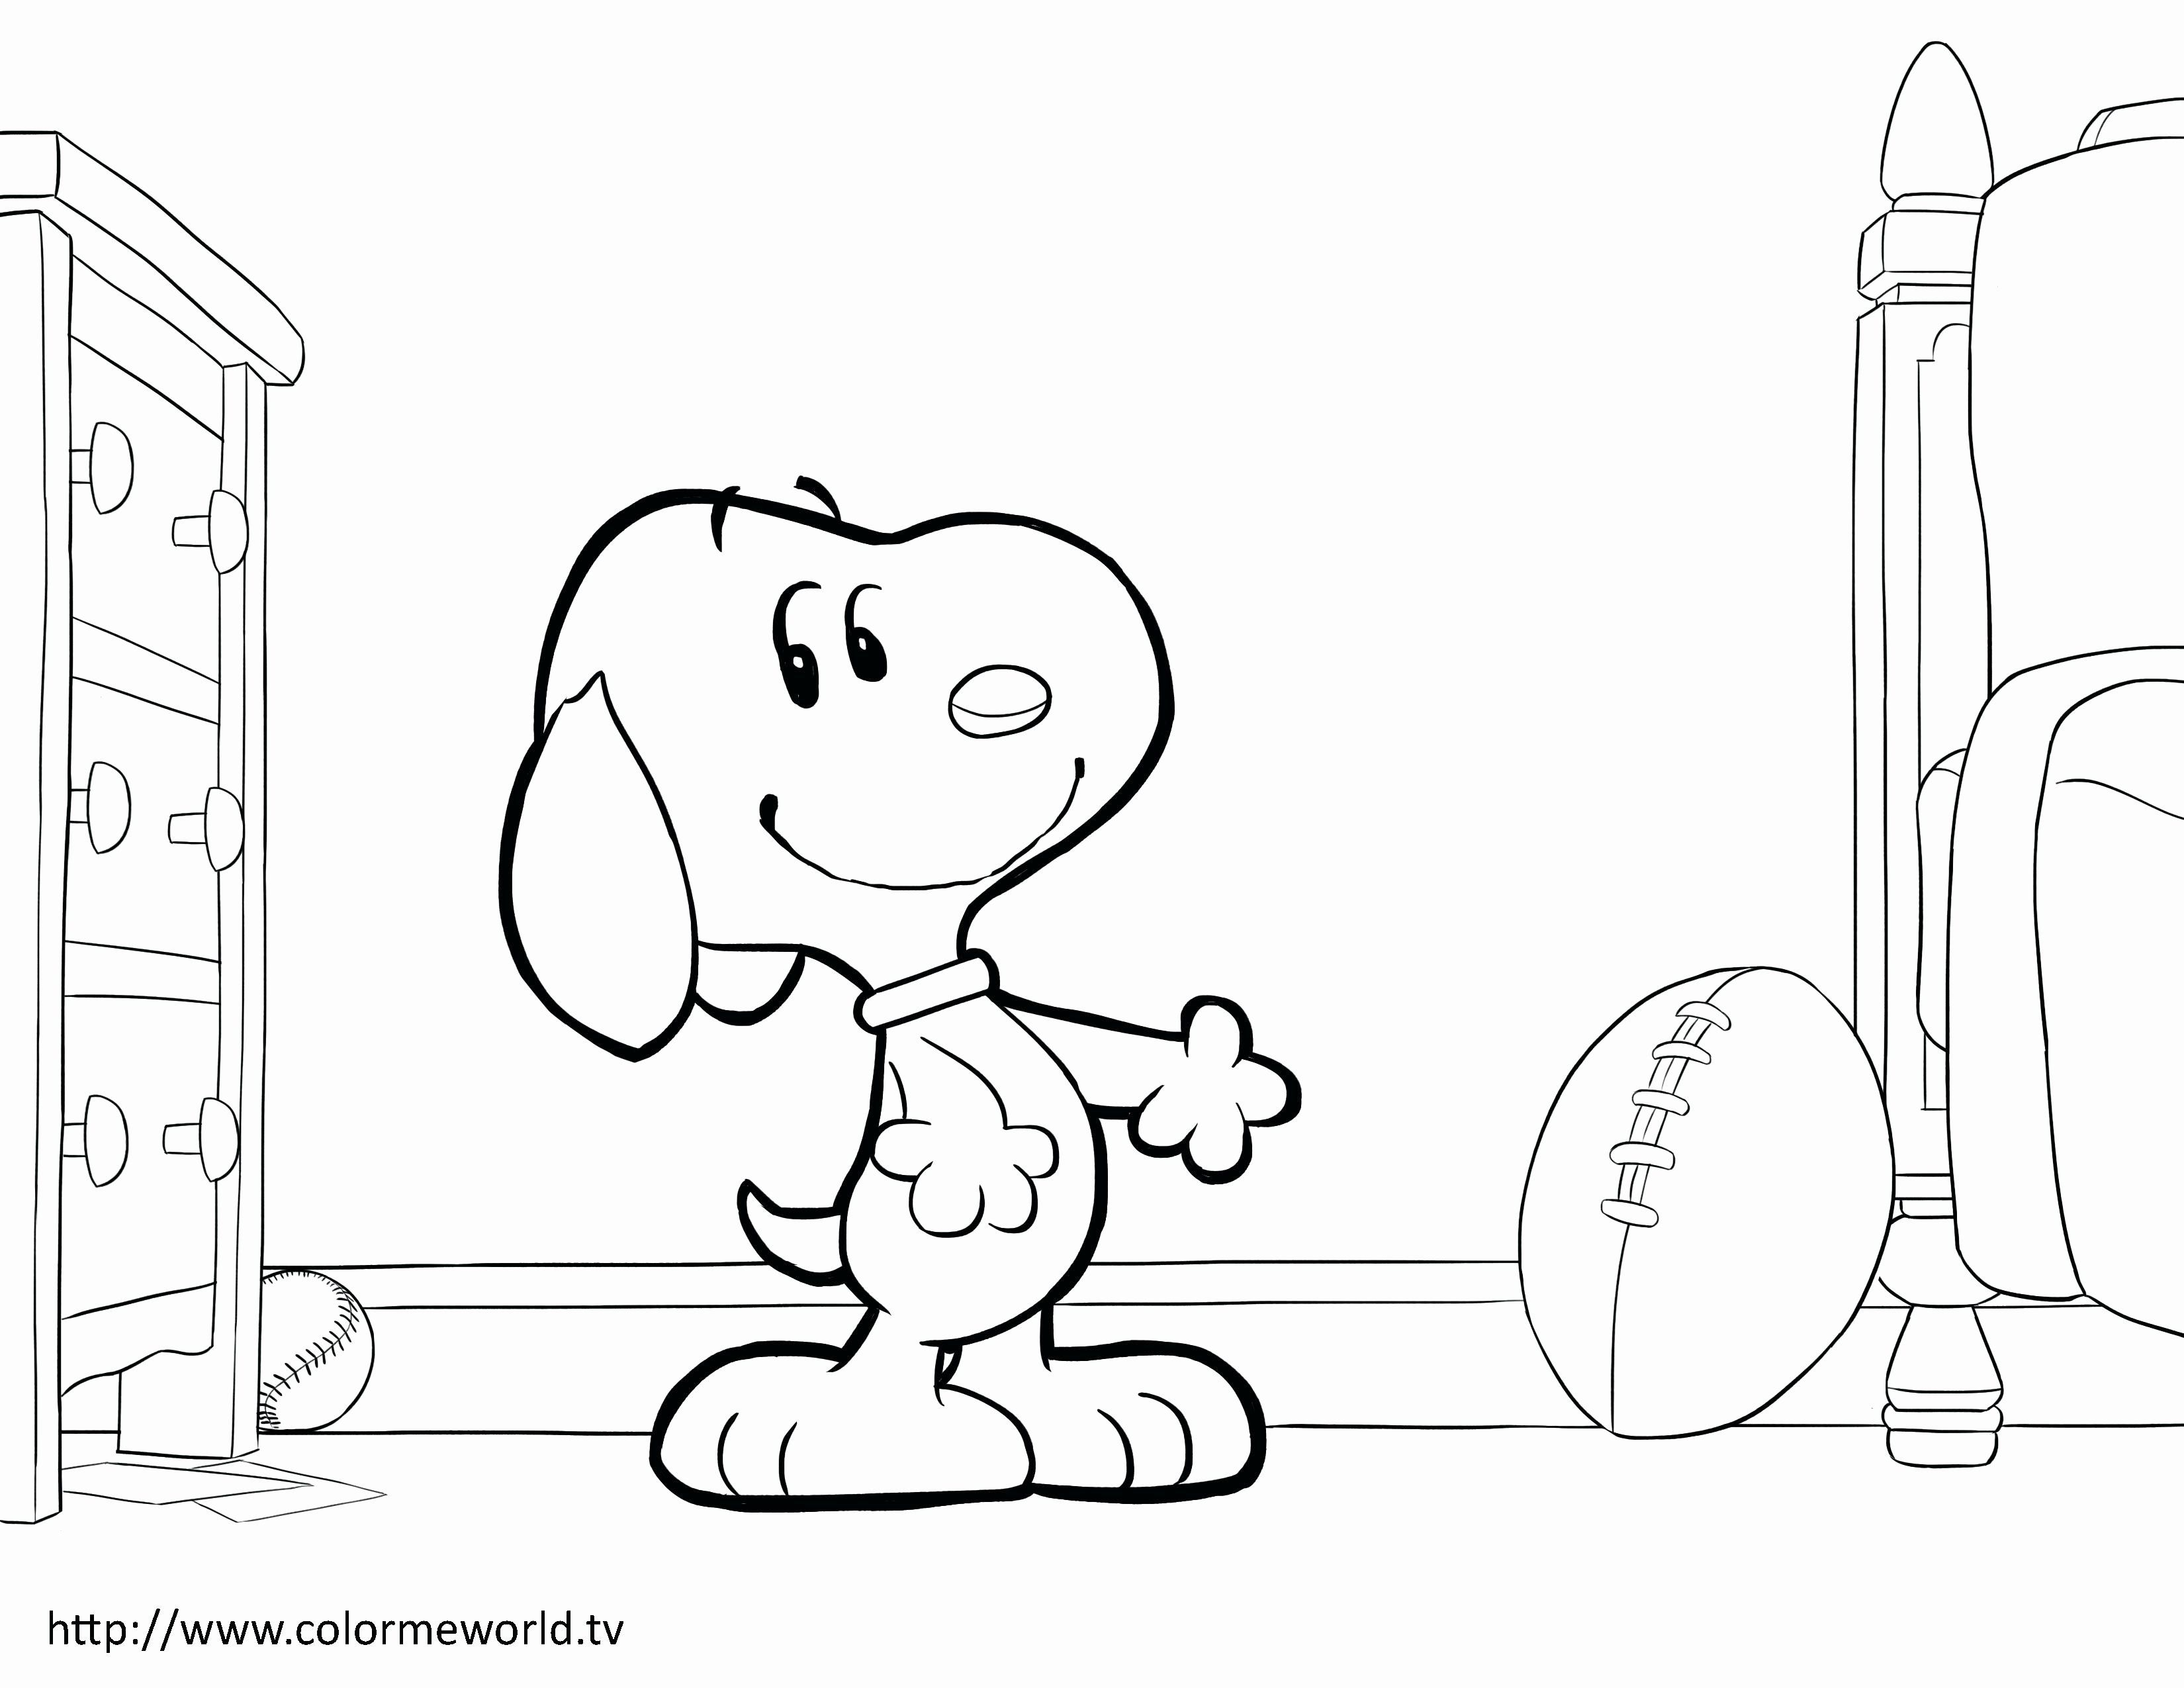 Snoopy Halloween Coloring Page Lovely Snoopy Coloring Books Album Sabadaphnecottage Snoopy Coloring Pages Snoopy Images Spongebob Coloring